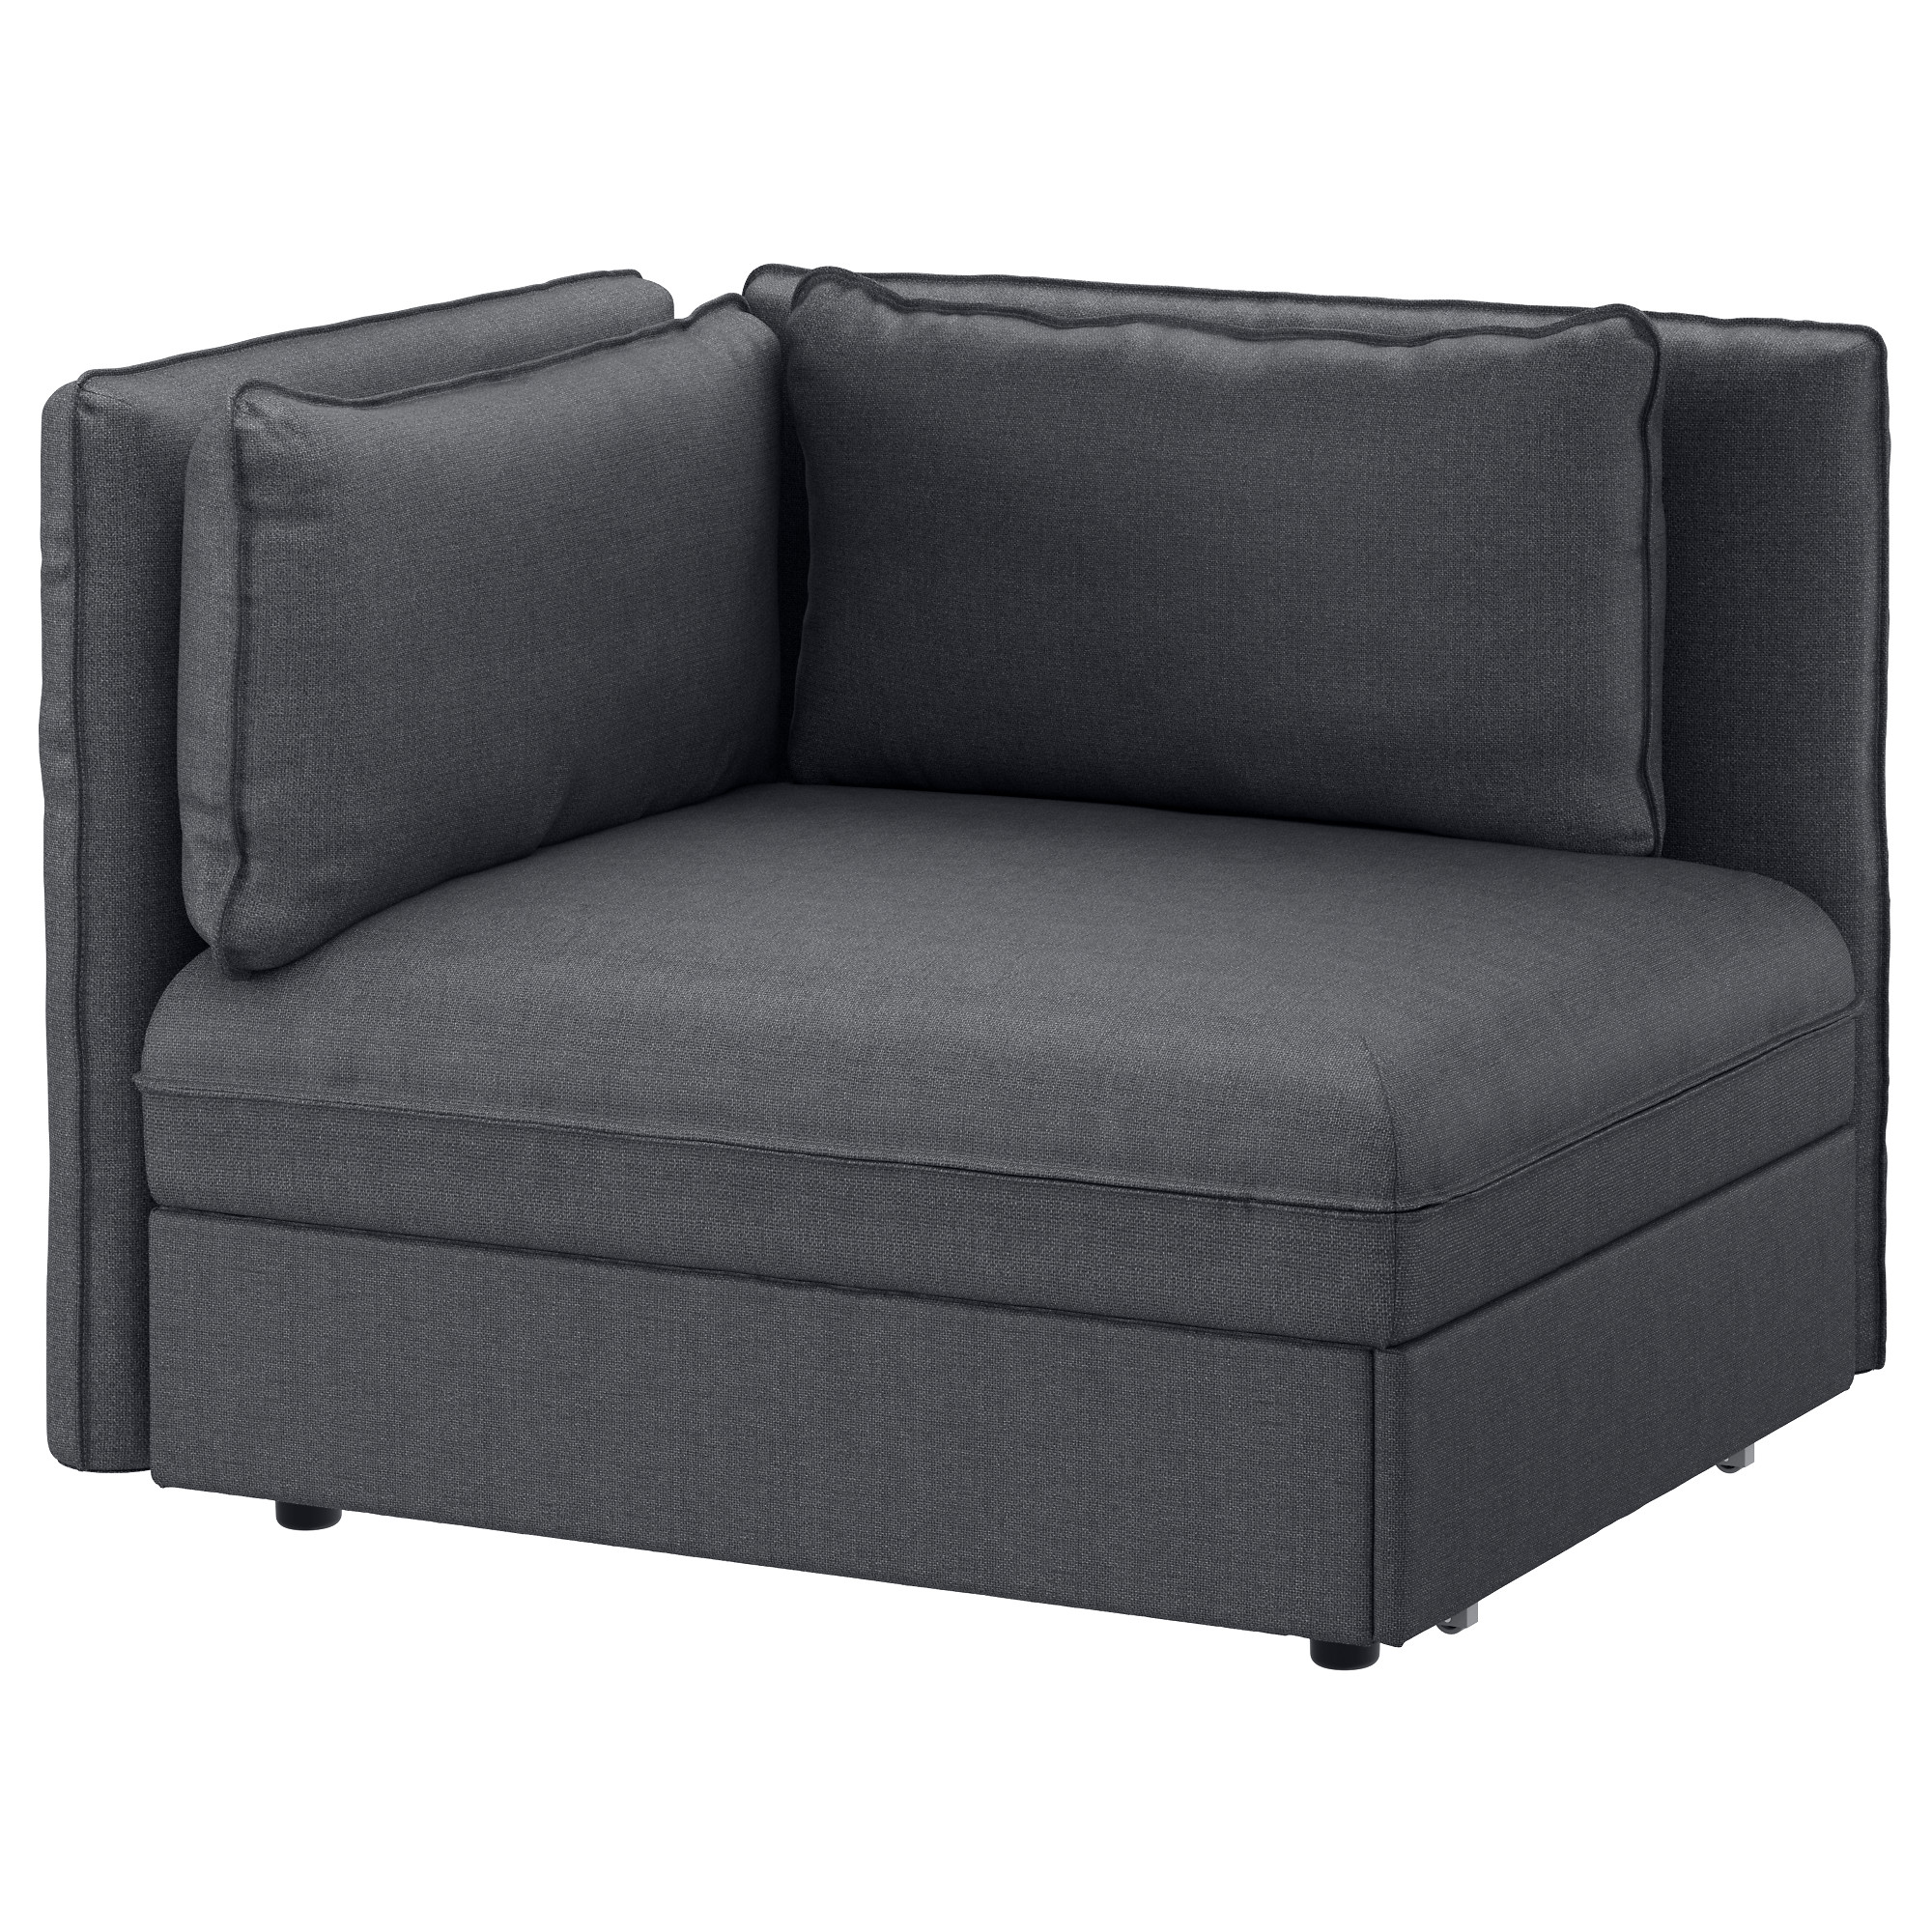 sofa sleeper leather ashley twin furniture comfortable chair daily for ikea bed sectional use couch